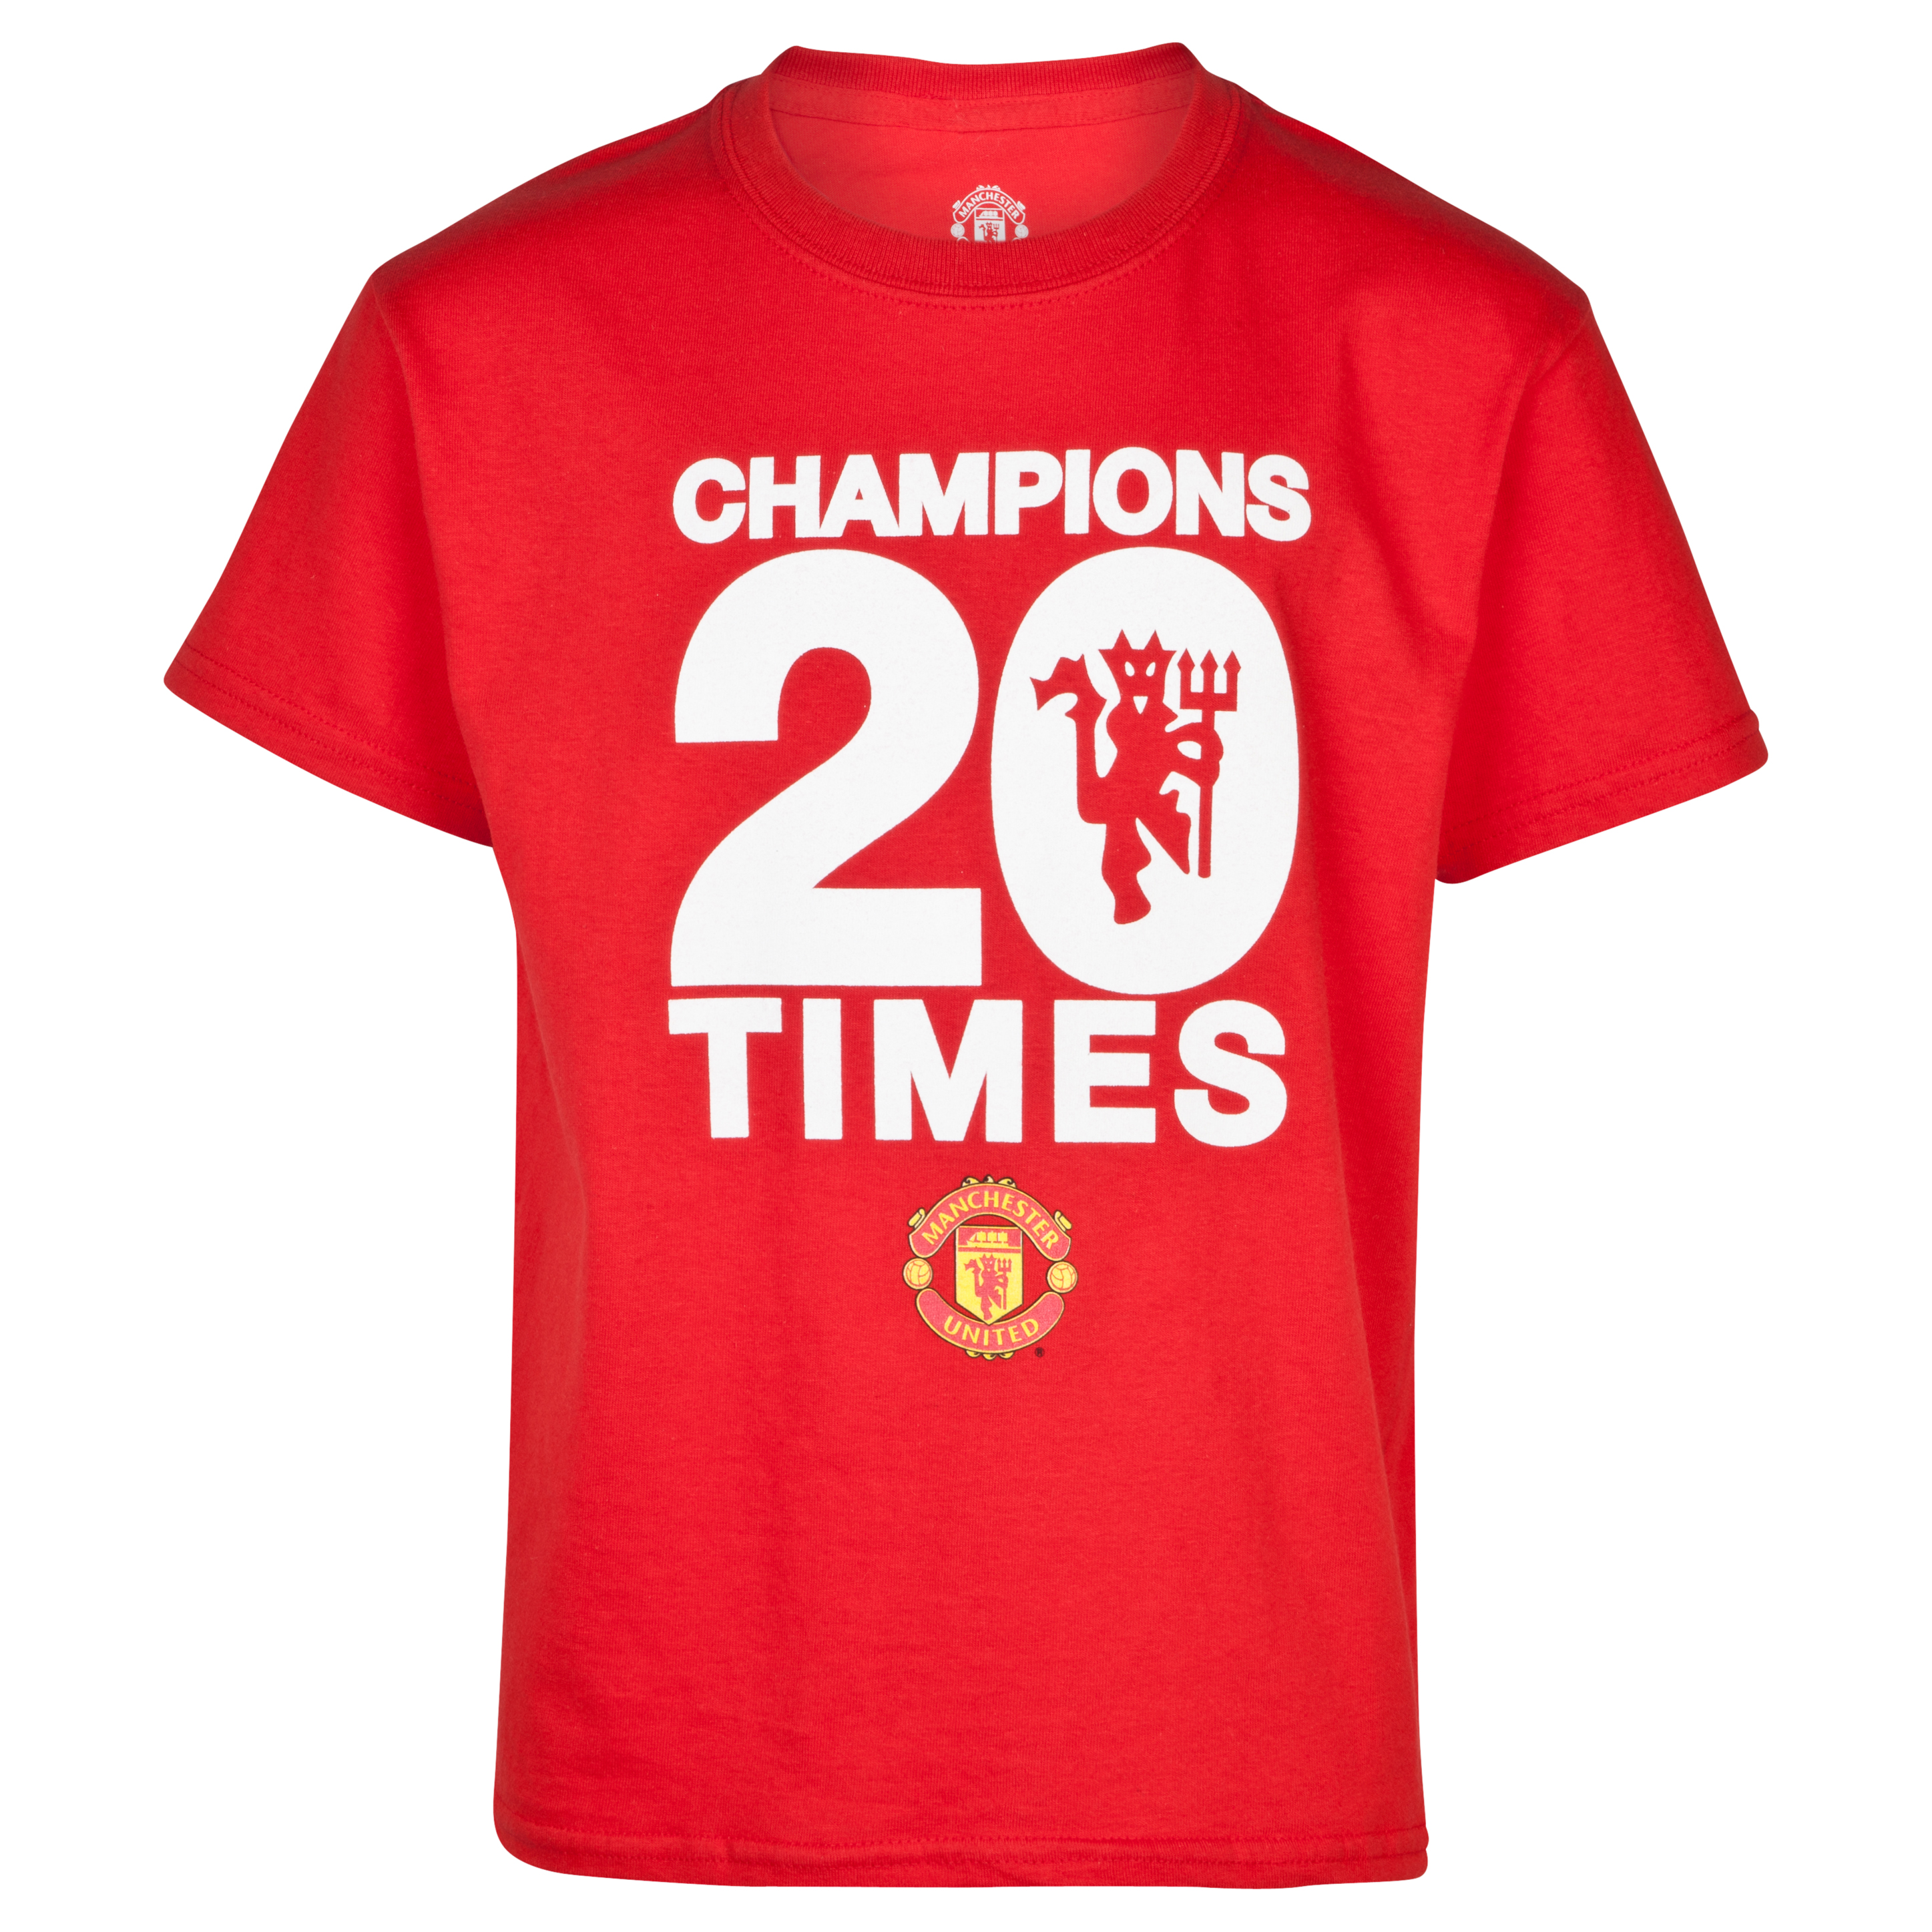 Manchester United 20 Times League Champions T-Shirt - Kids Red